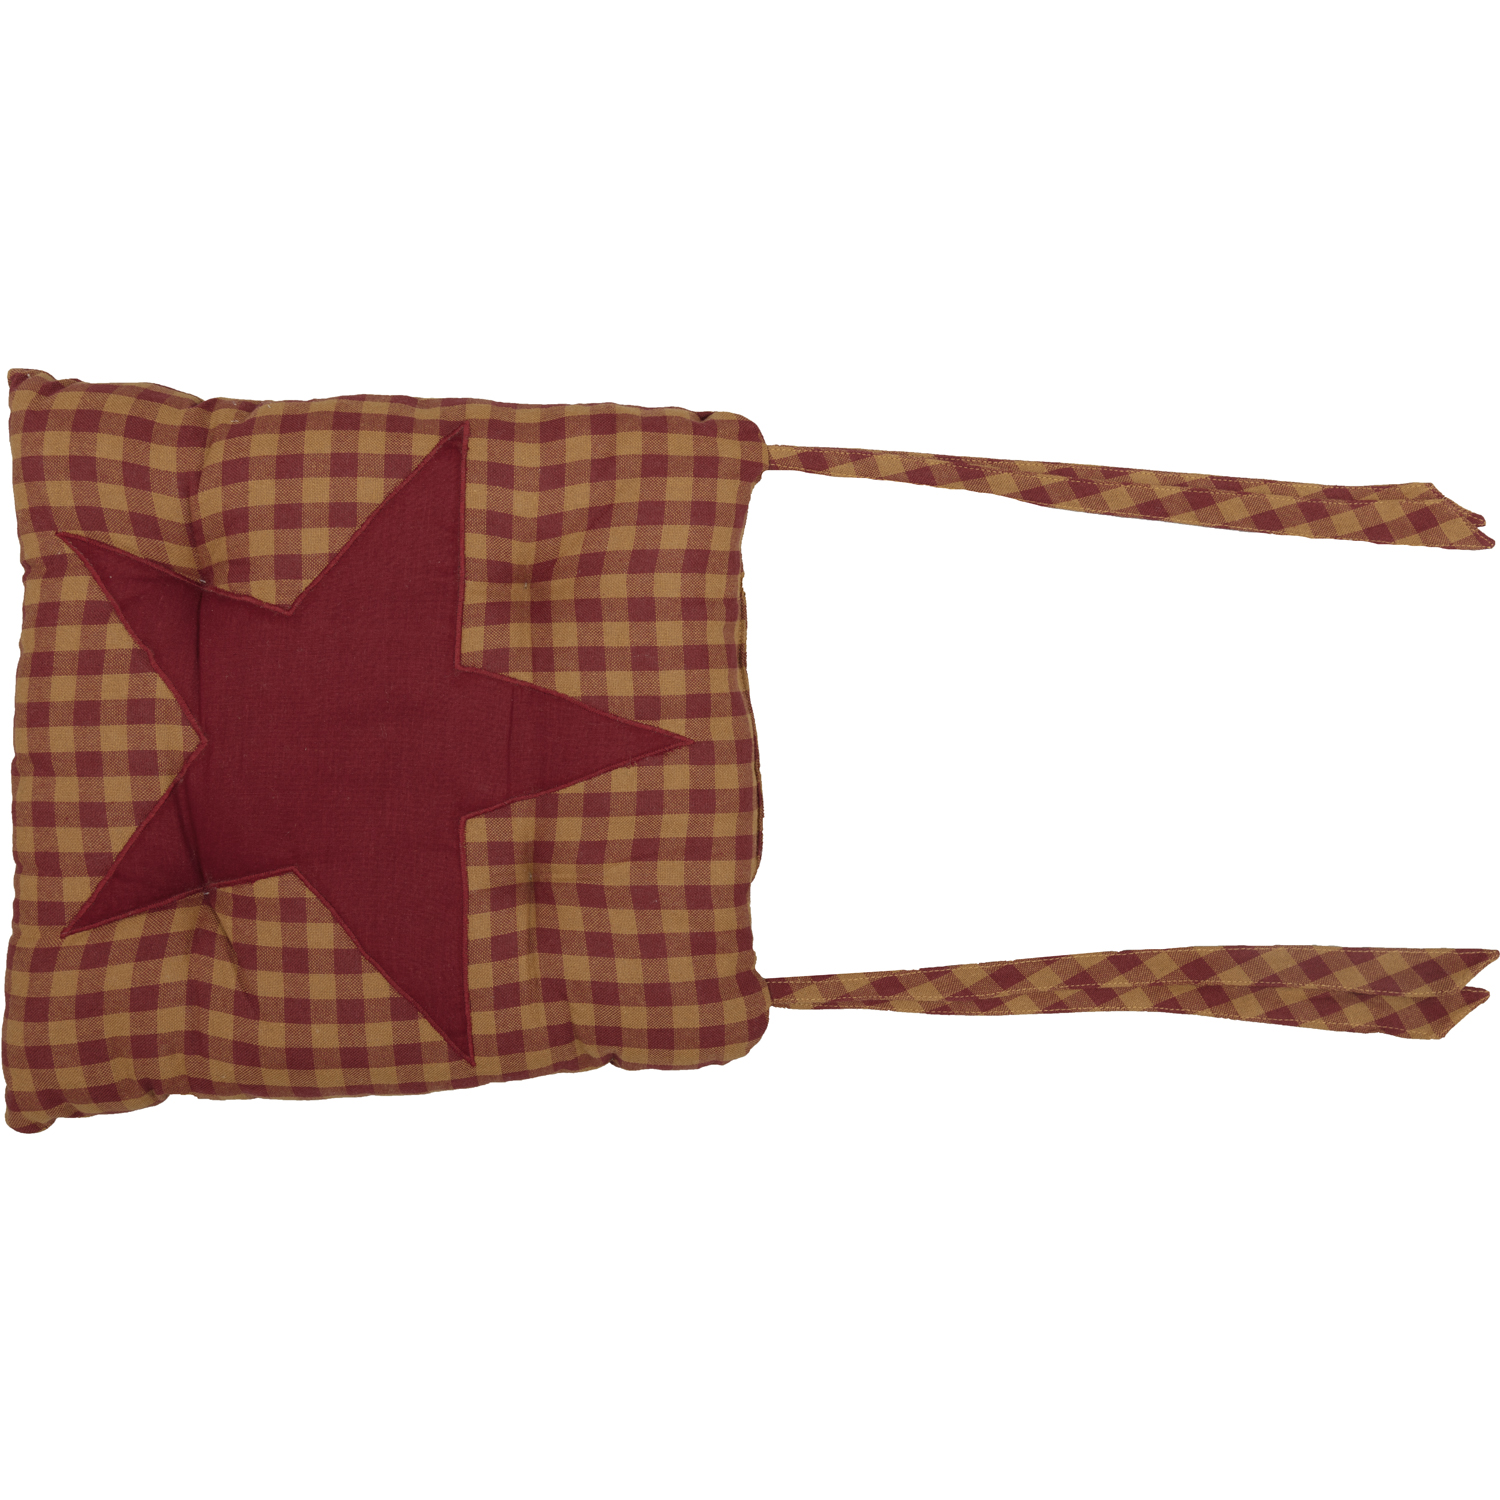 Burgundy-Star-Chair-Pad-image-4